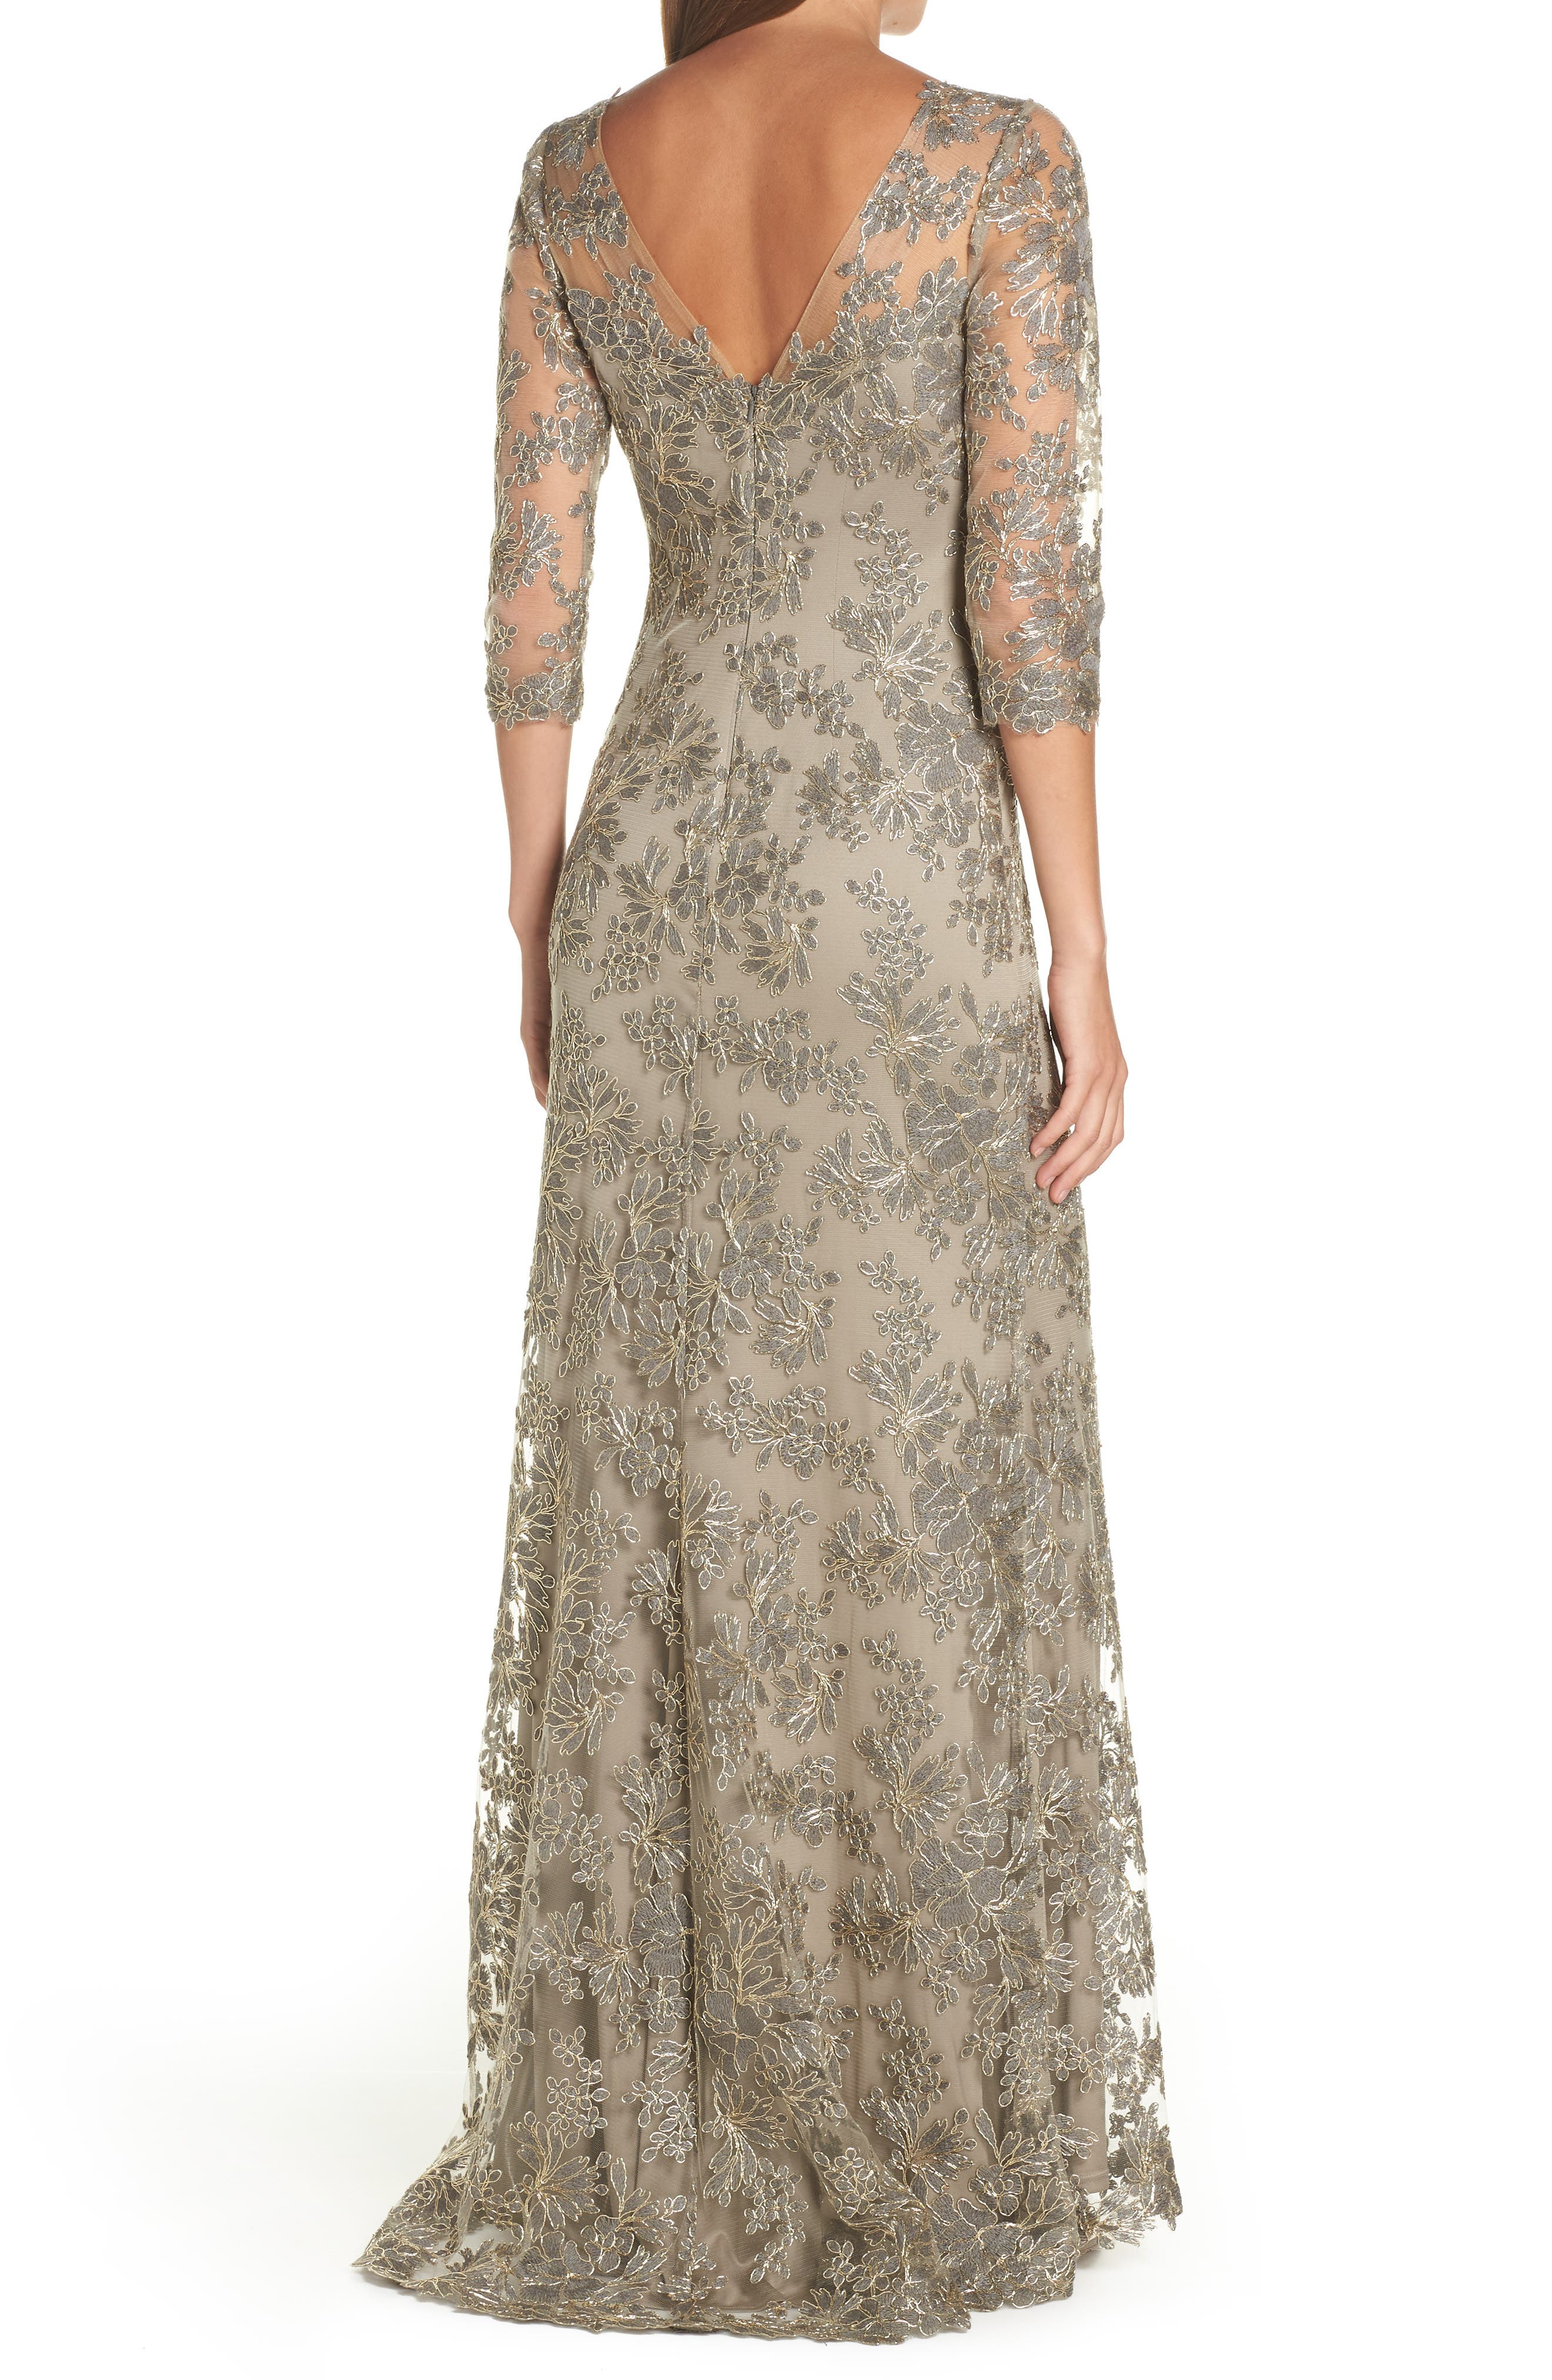 TADASHI SHOJI, Corded Embroidered Lace Gown, Alternate thumbnail 2, color, SMOKE PEARL